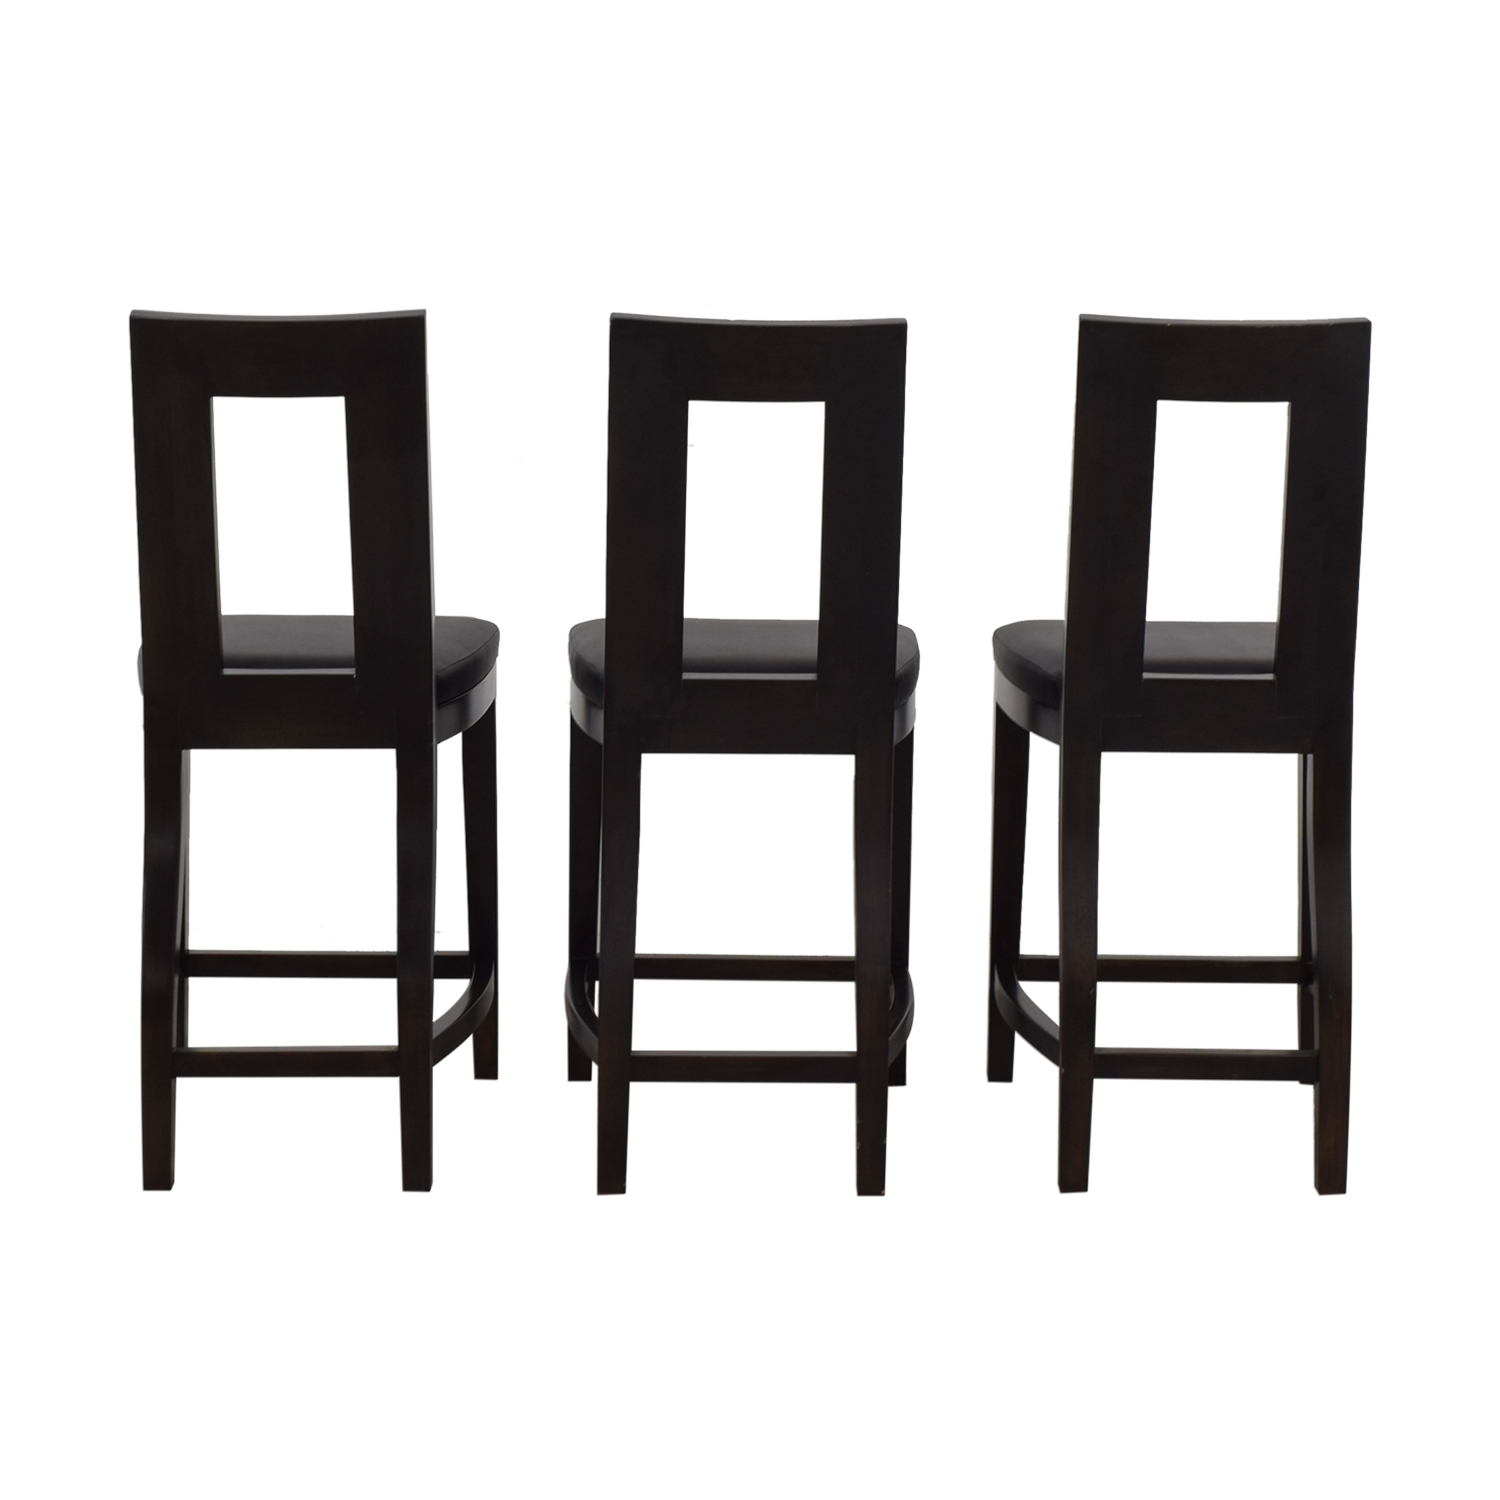 Furniture Masters Furniture Masters Black Bar Stools nj